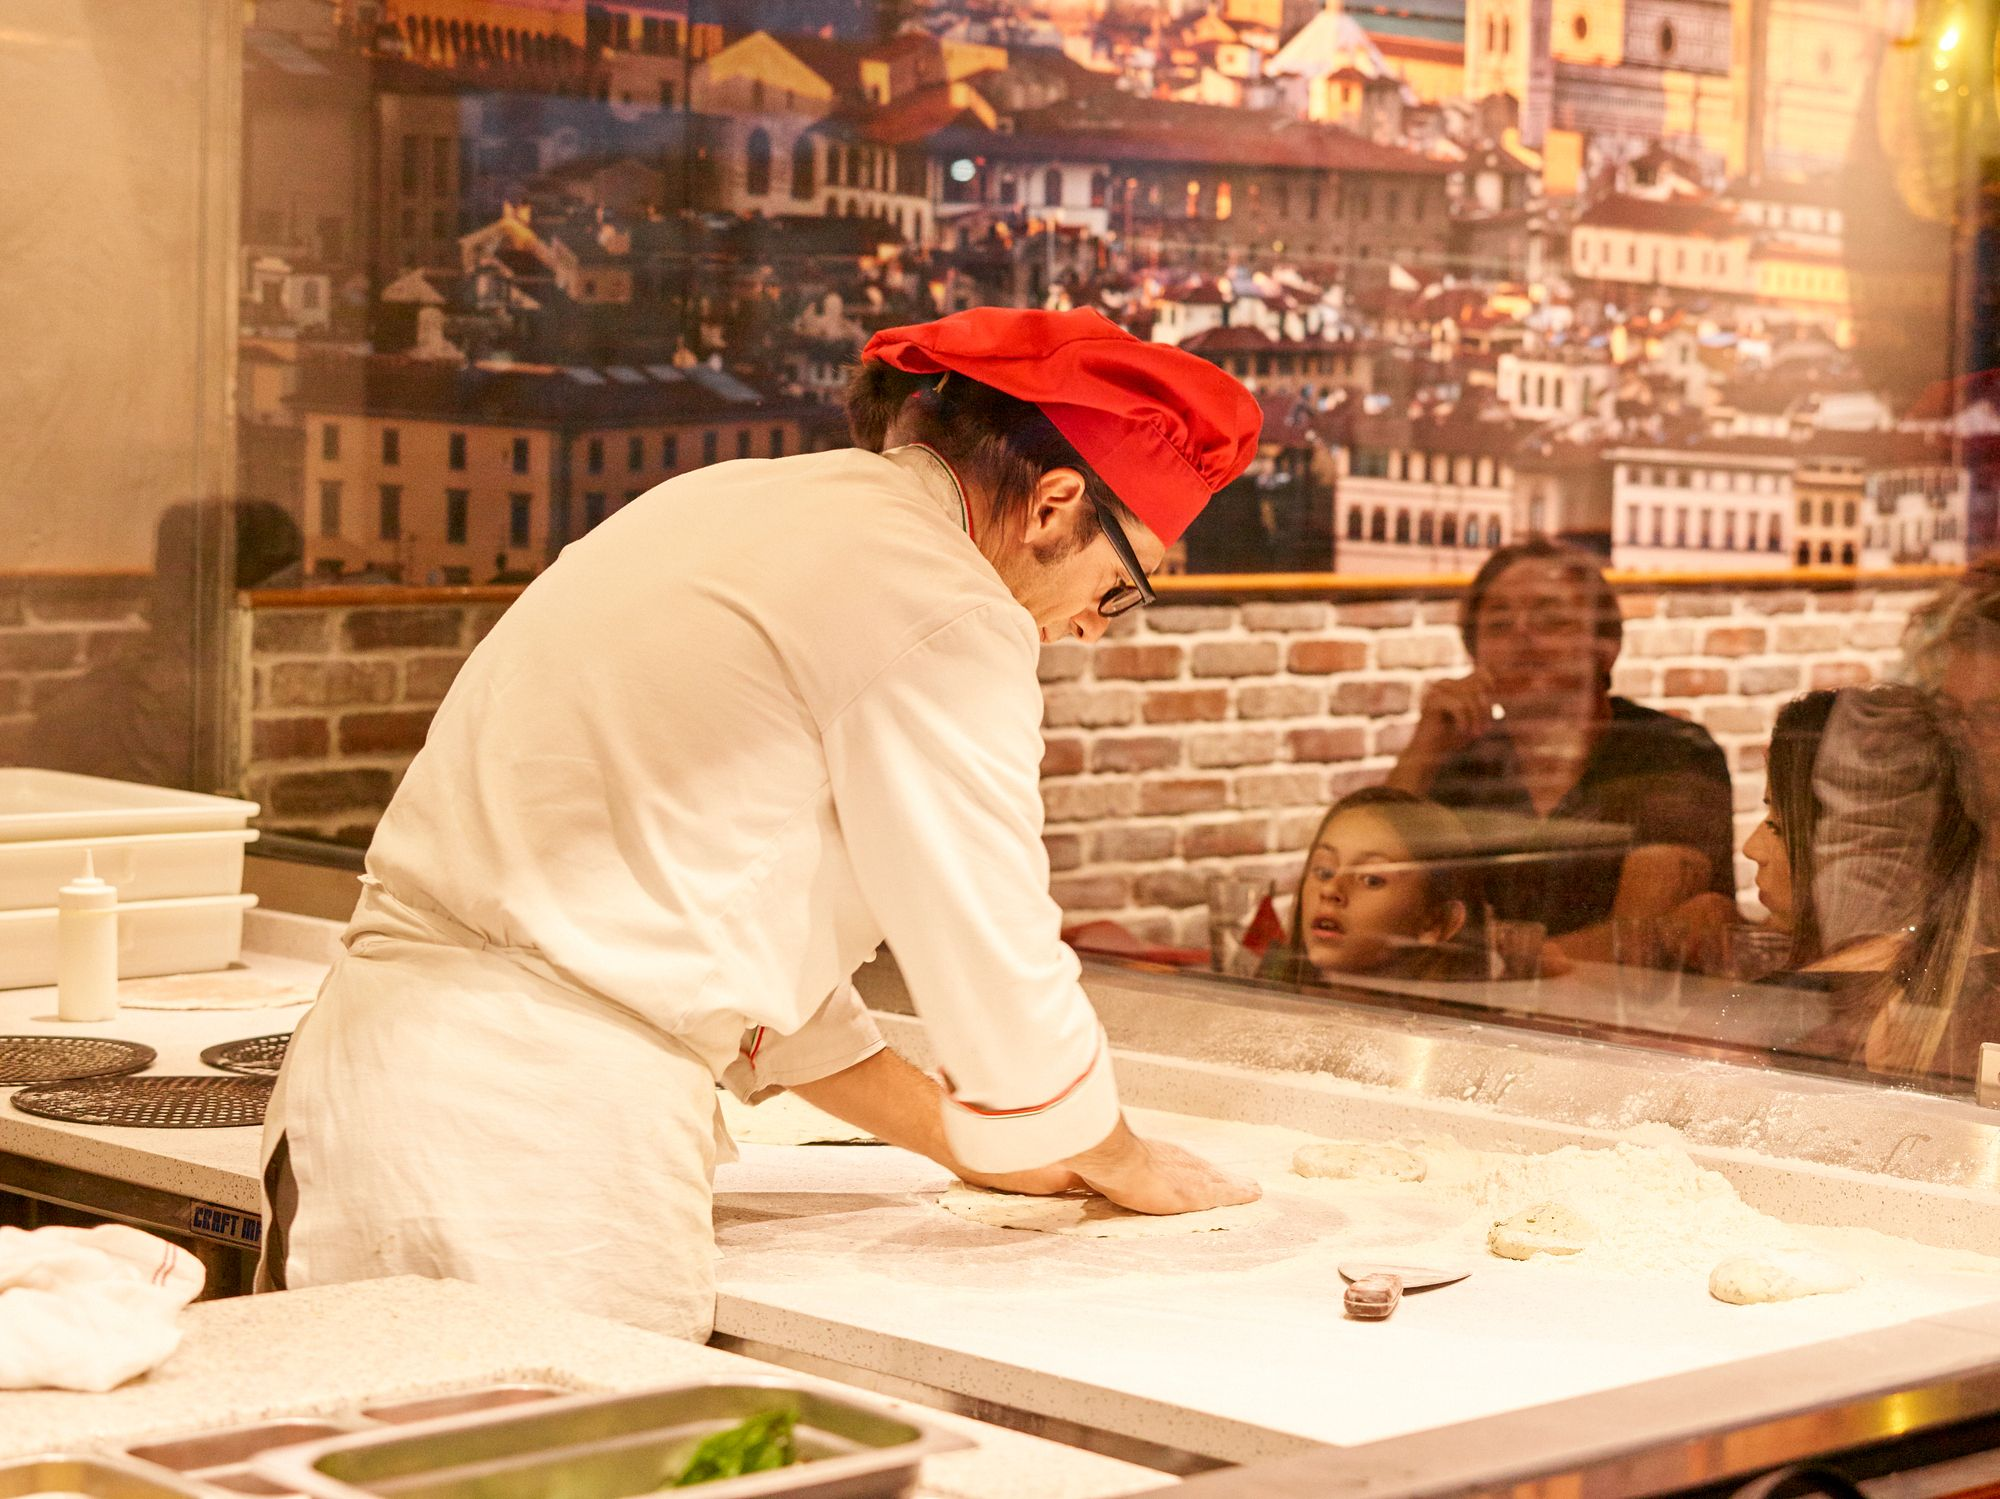 Our Pizzaiolo comes from Bari, has over 30 years